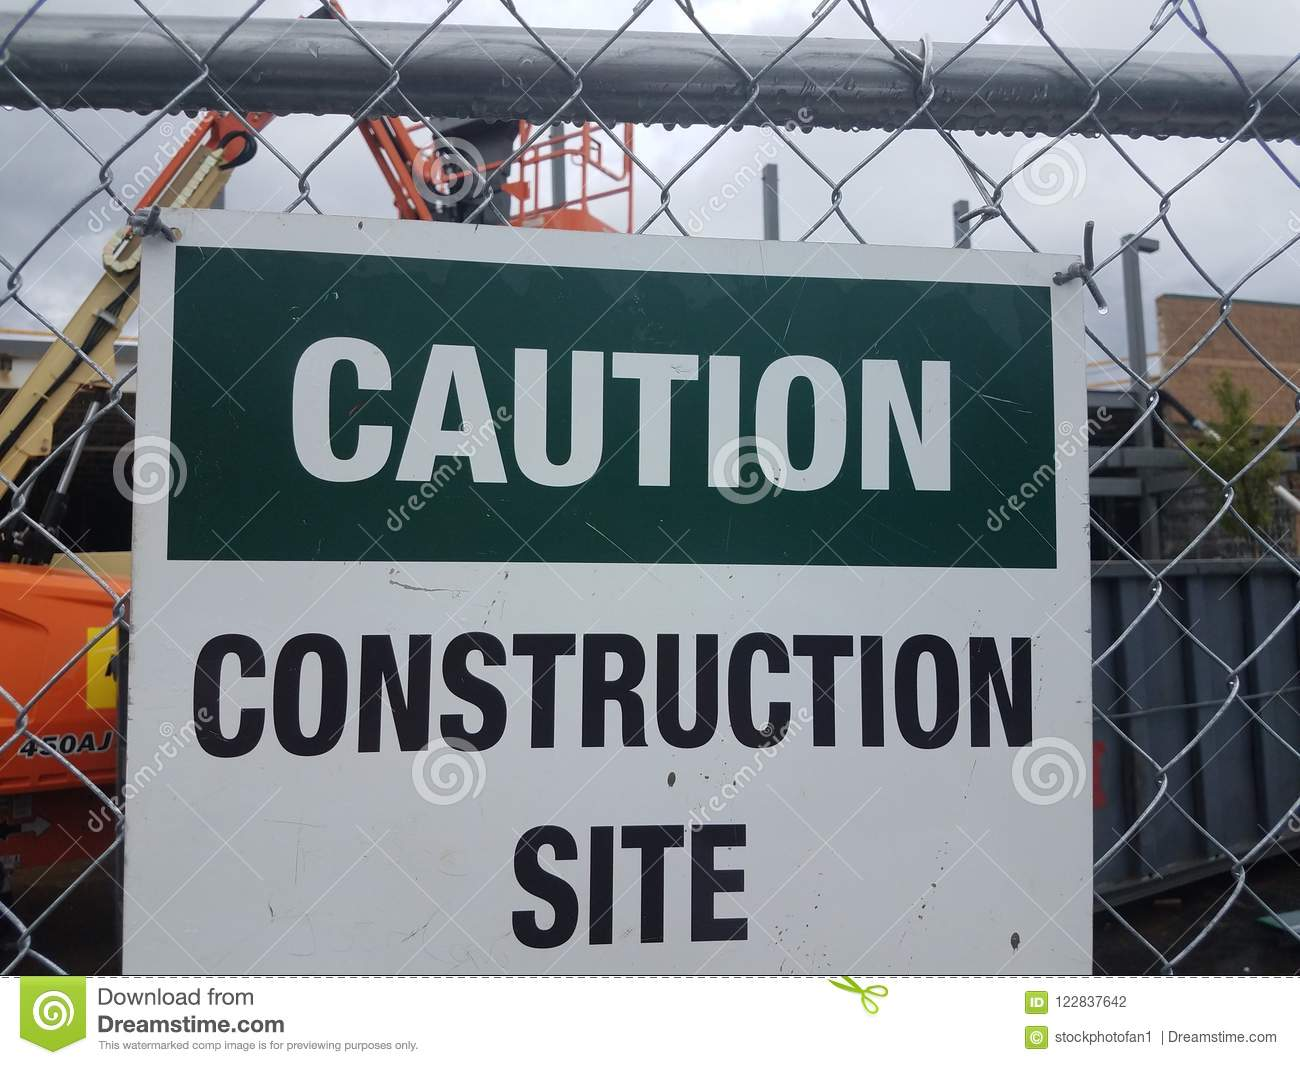 Caution construction site sign on metal fence